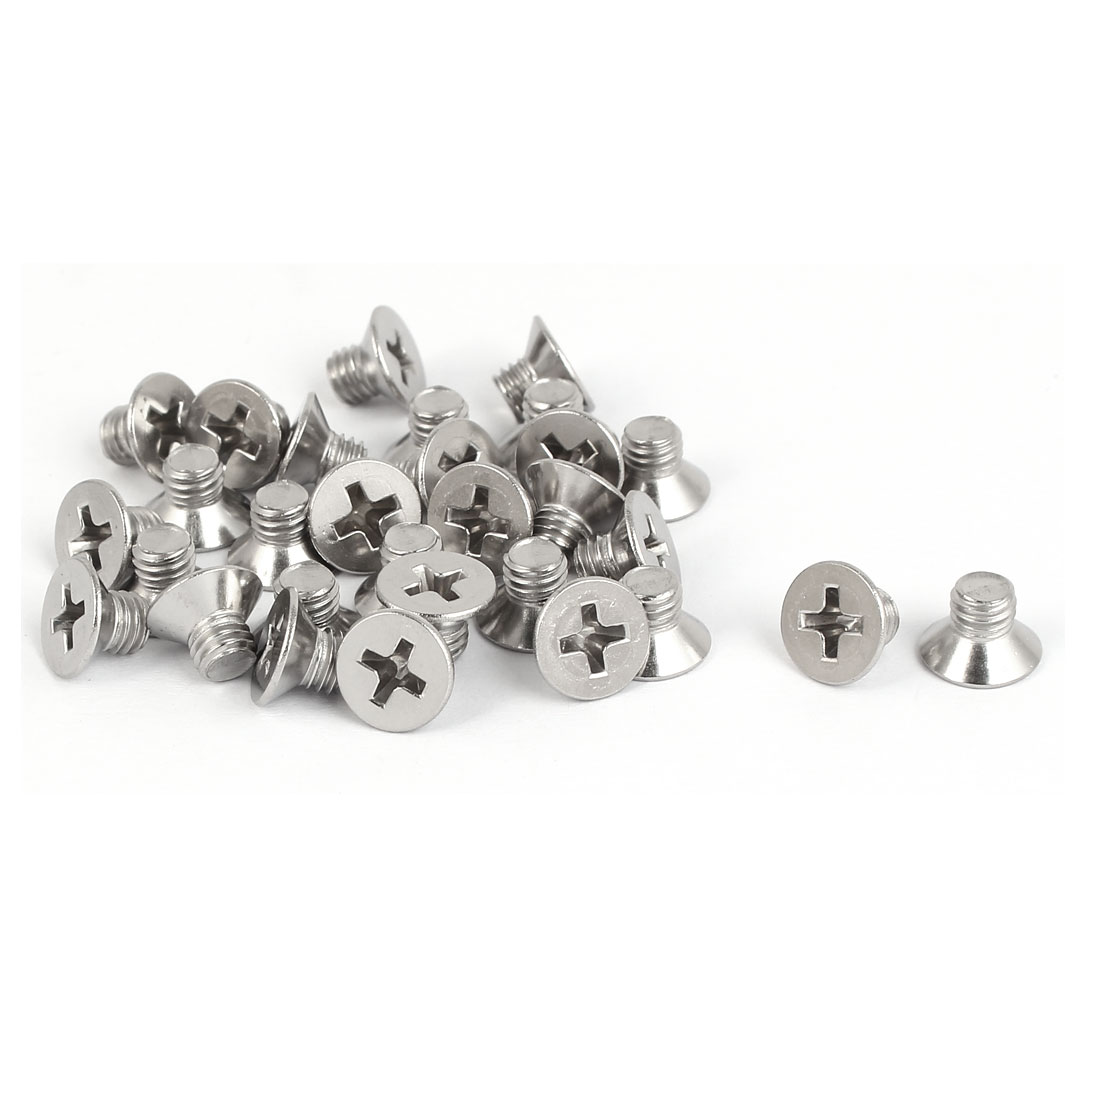 30 Pcs M5x6mm 316 Stainless Steel Countersunk Phillips Machine Screws Fasteners